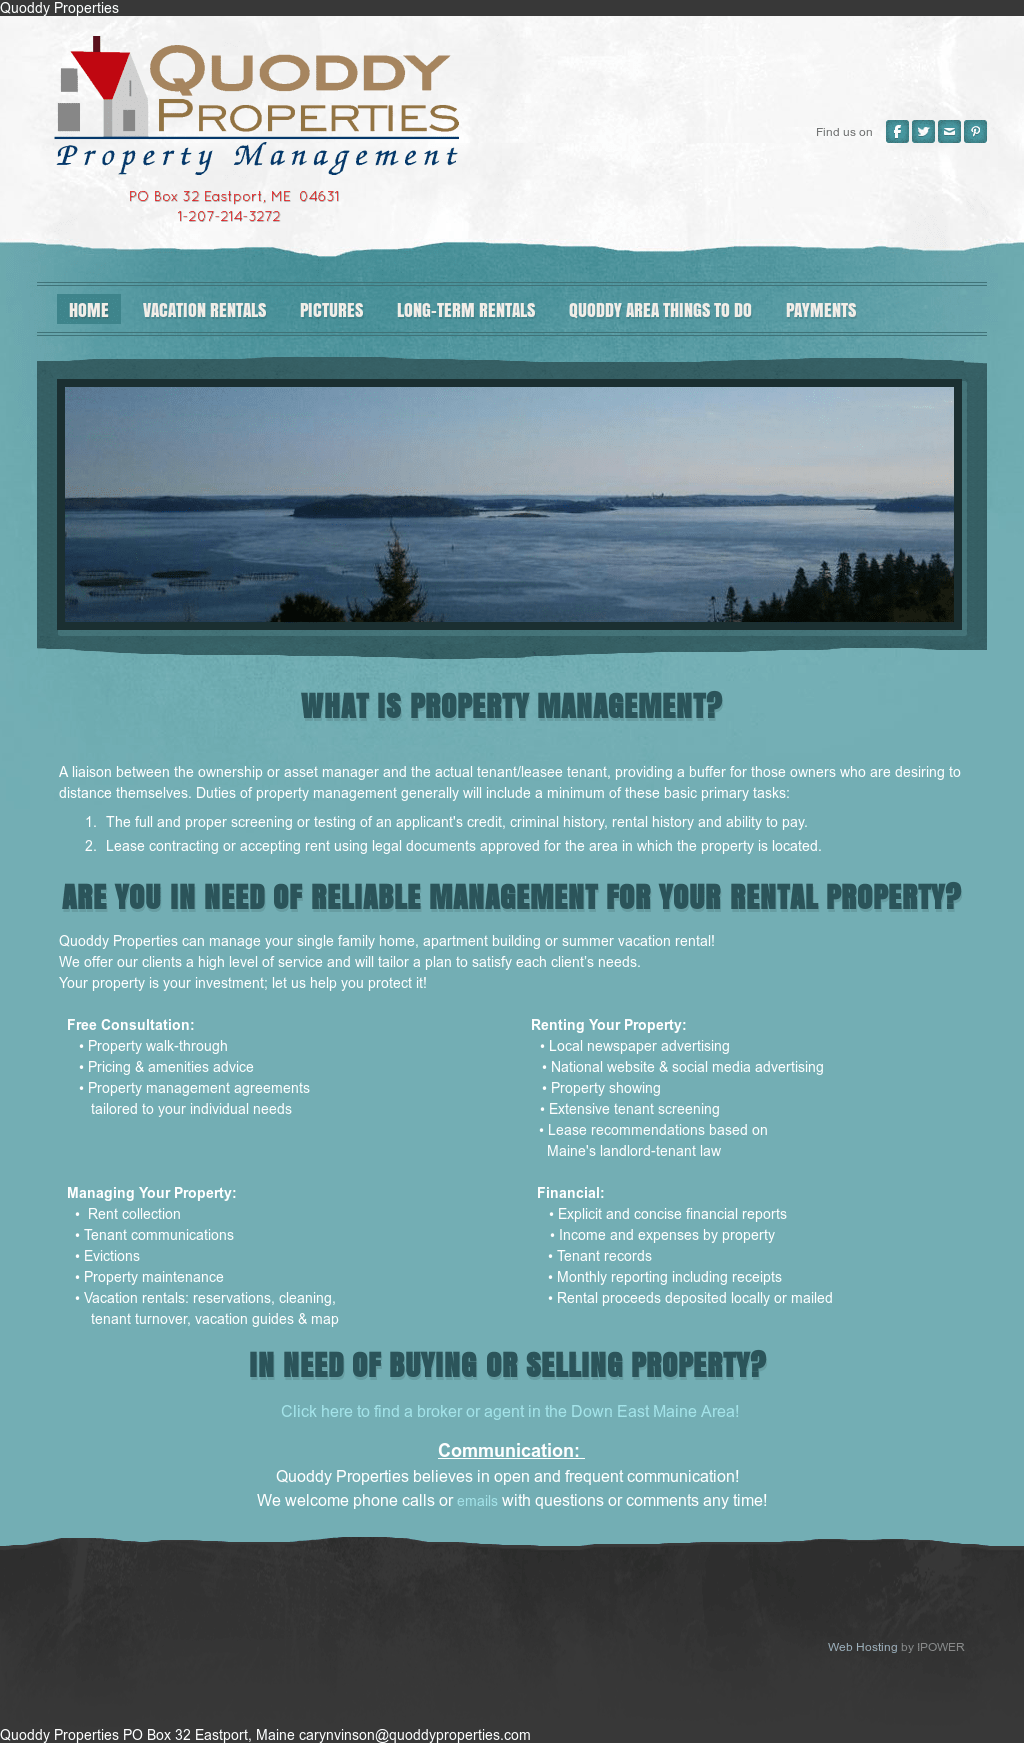 Quoddy Properties Competitors, Revenue and Employees - Owler Company ...